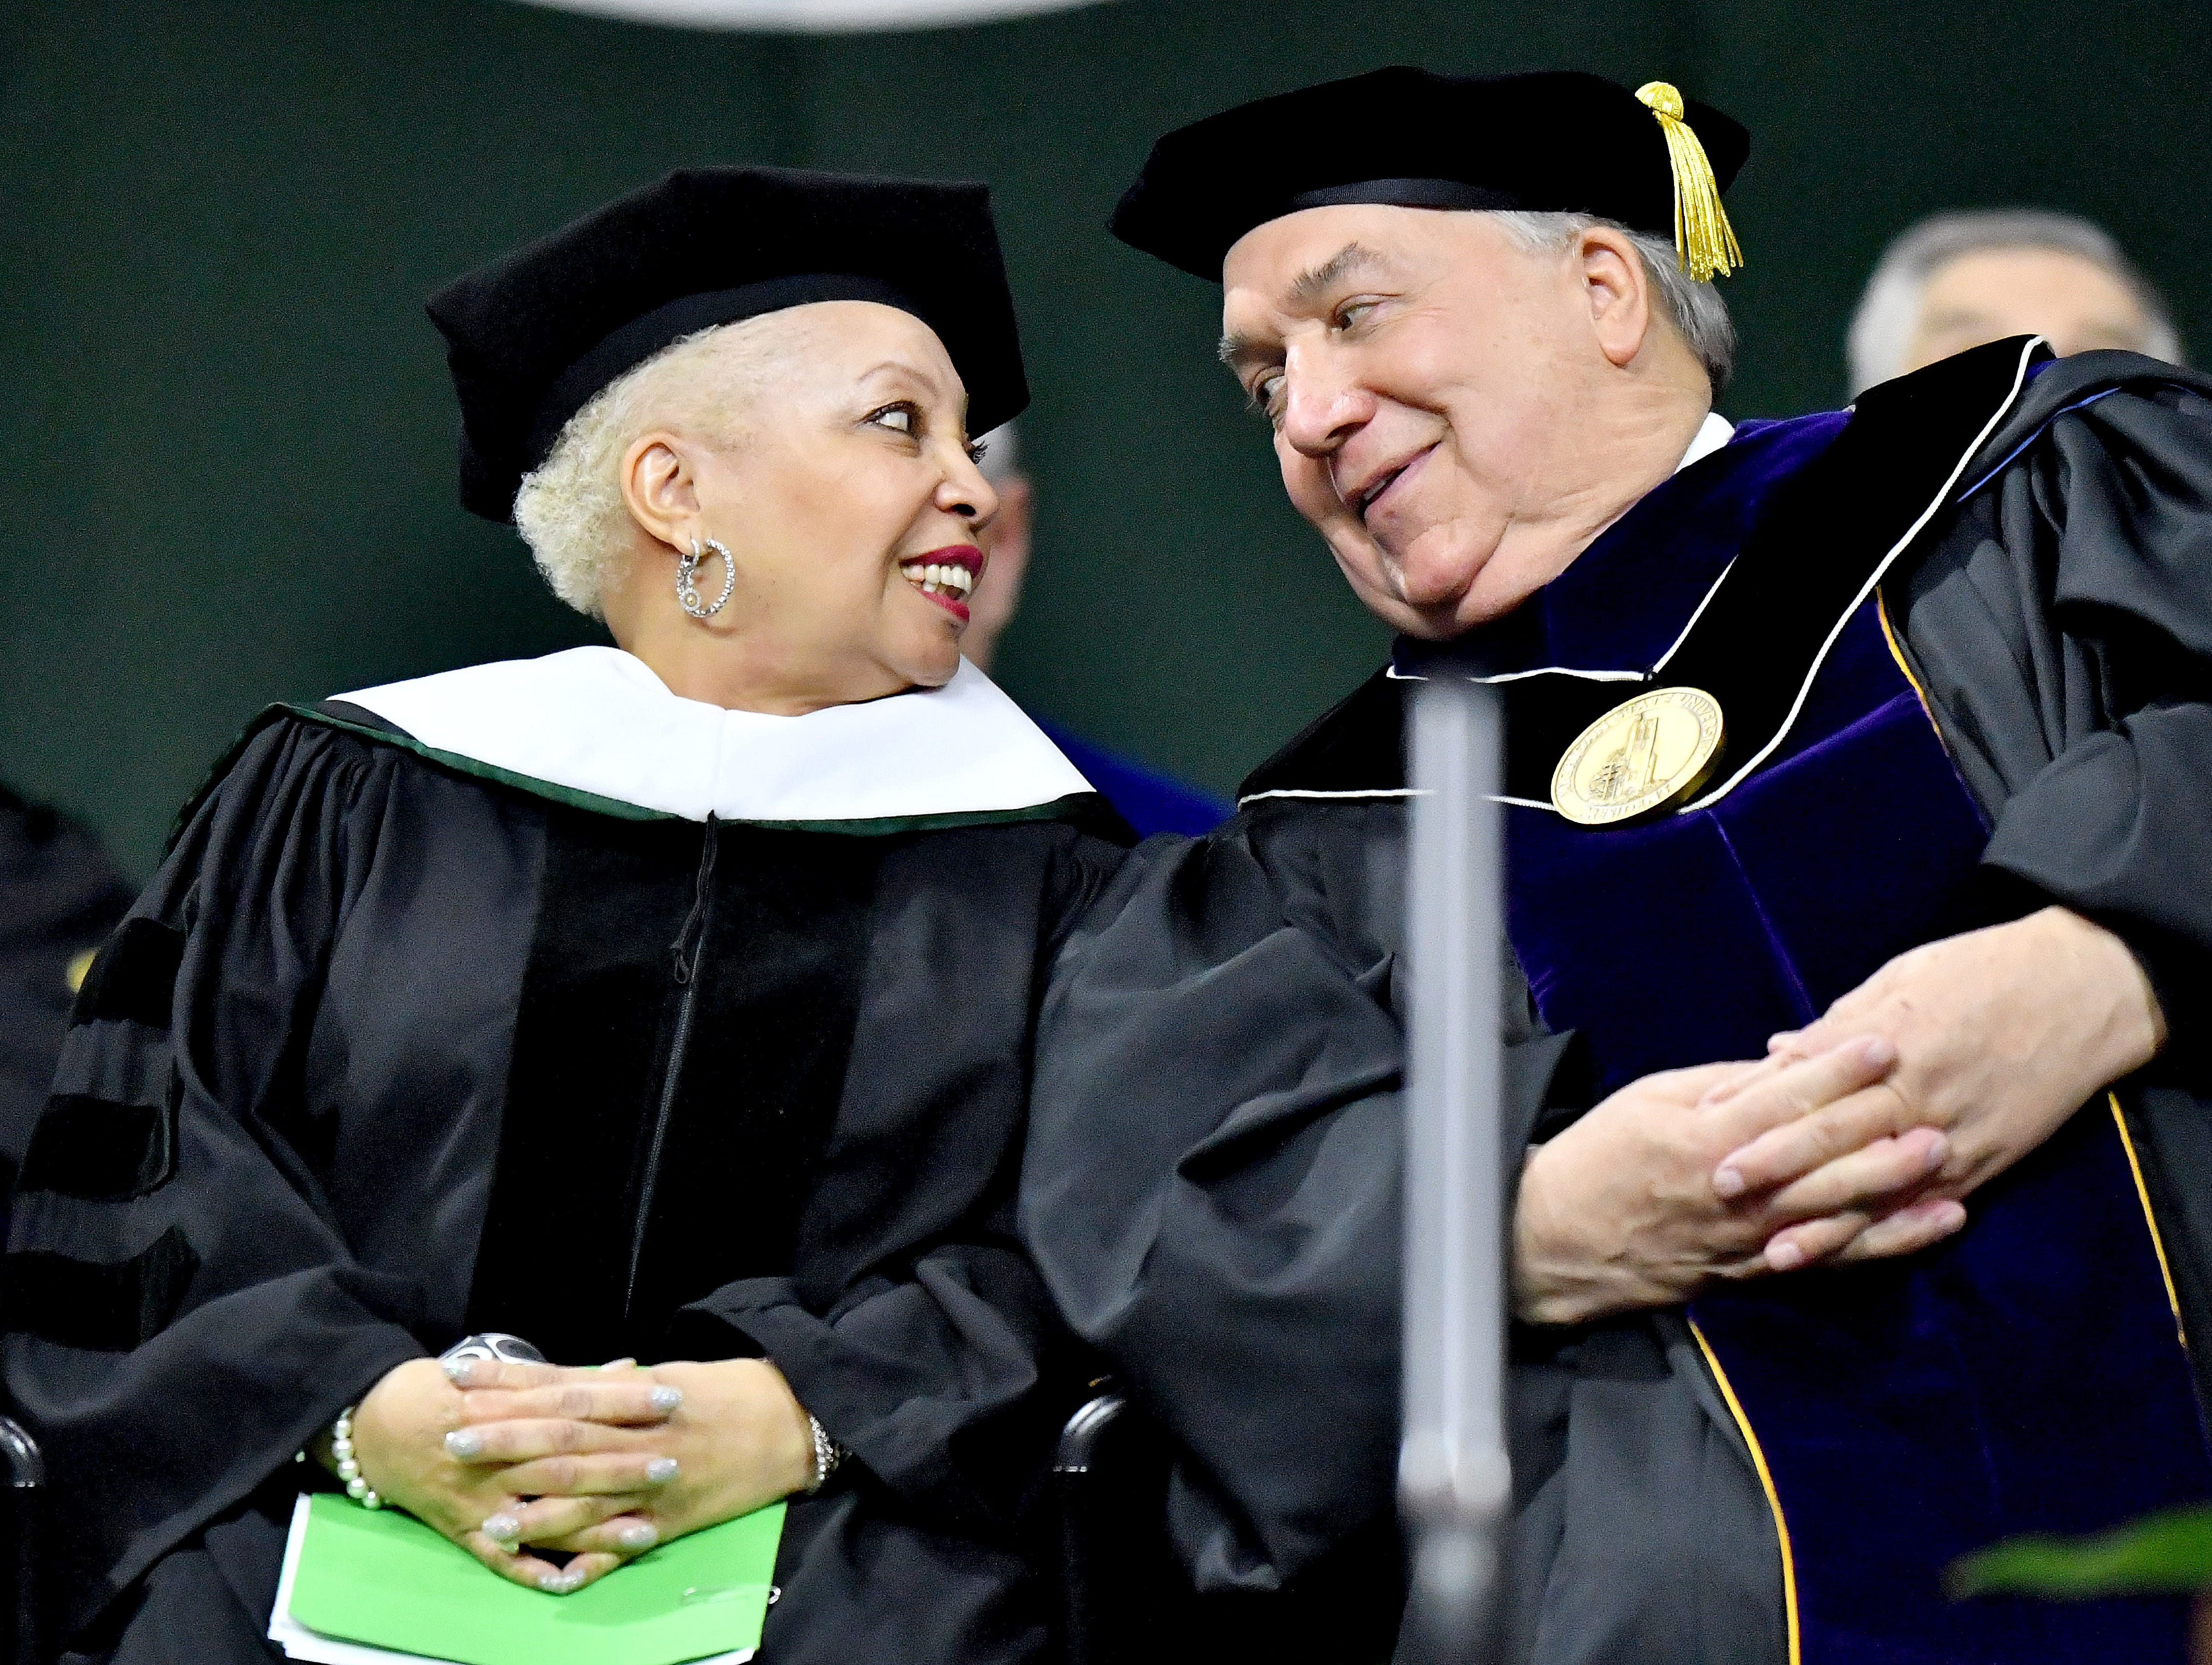 Former Starbucks executive Wanda Herndon shares a chuckle with interim President John Engler at the Michigan State University commencement ceremony on May 4, 2018 in East Lansing.